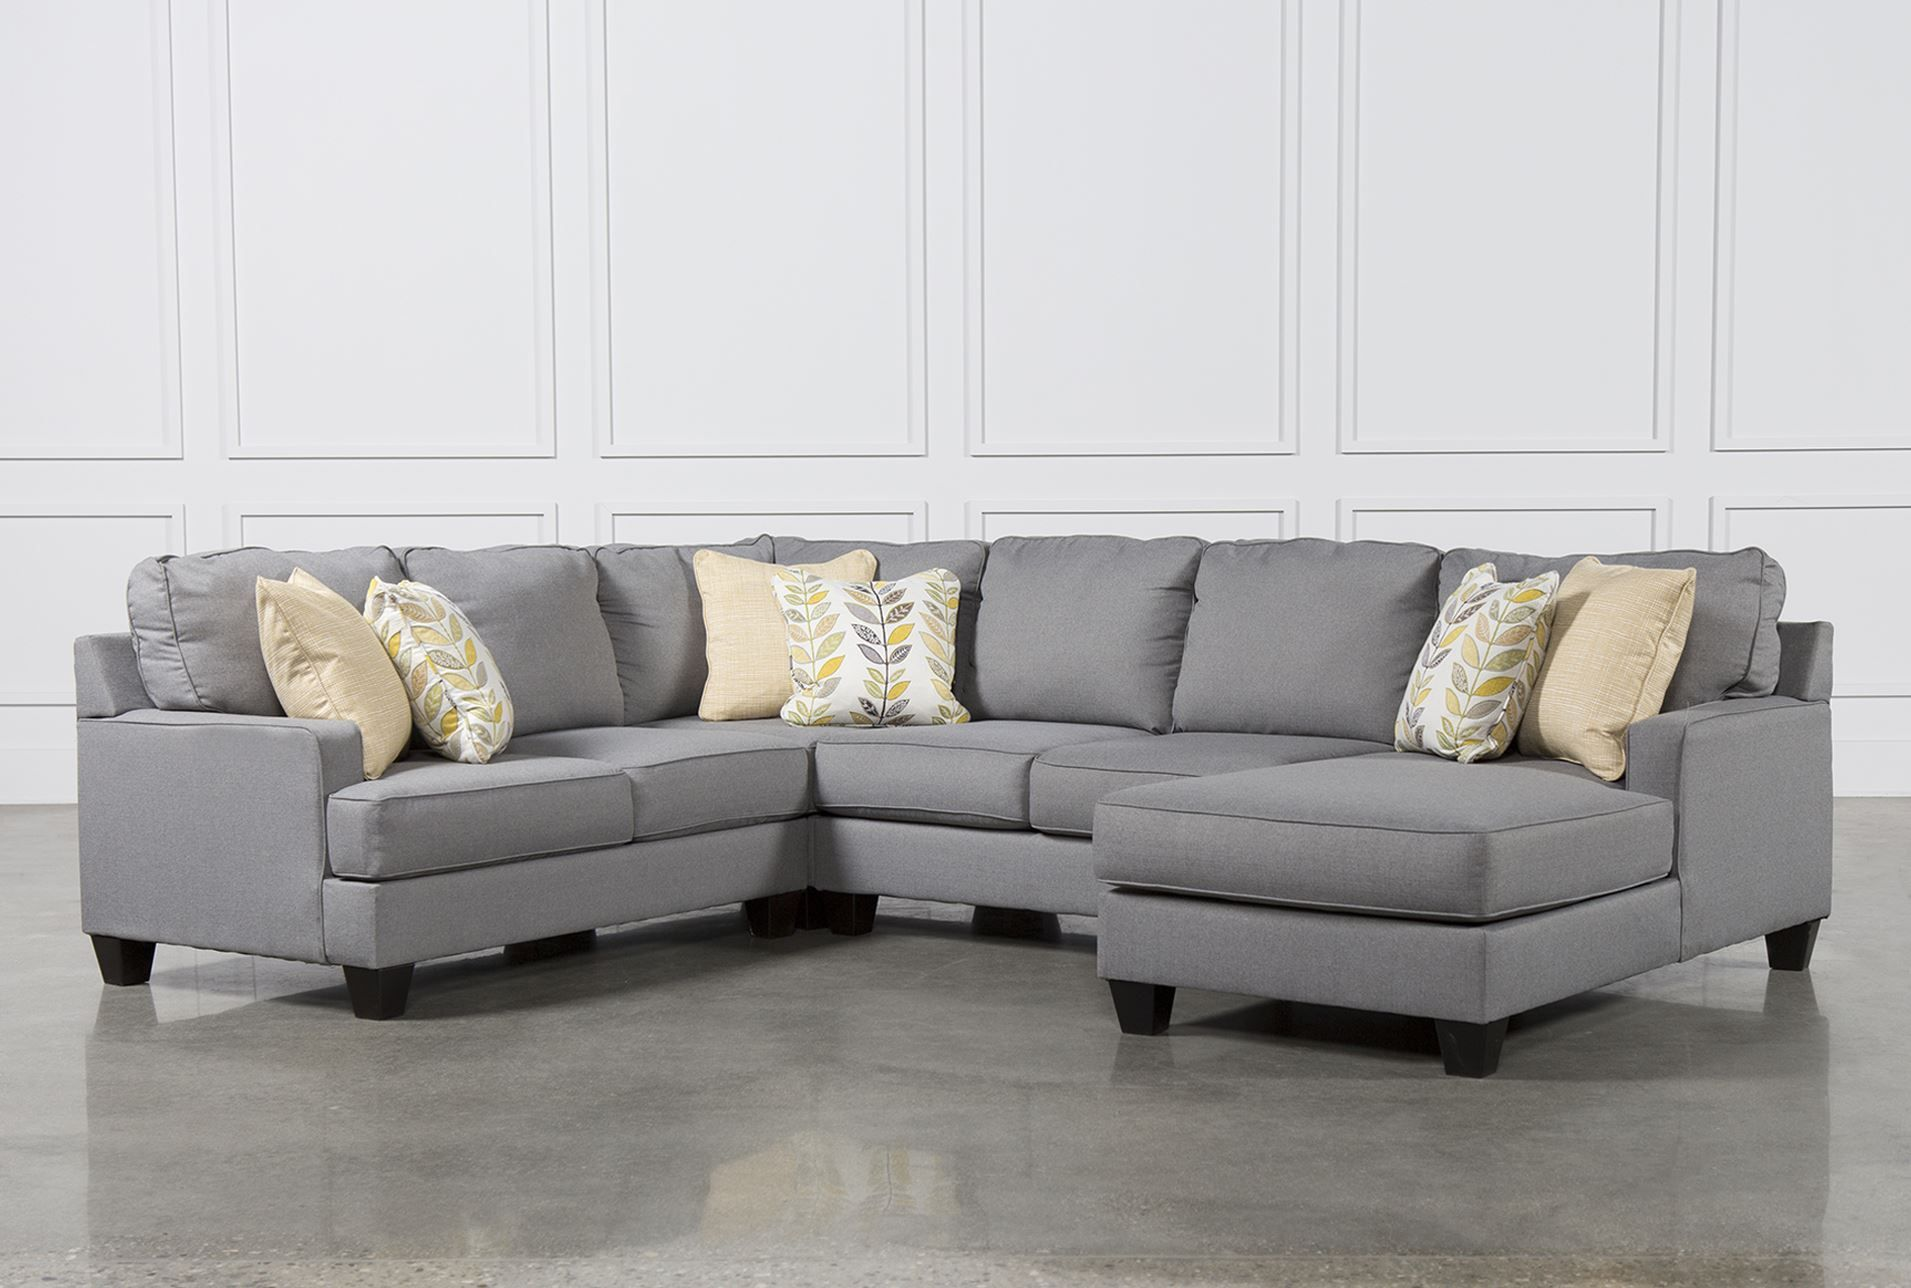 Chamberly 4 Piece Sectional W/Raf Chaise : 4 piece sectional sofa with chaise - Sectionals, Sofas & Couches